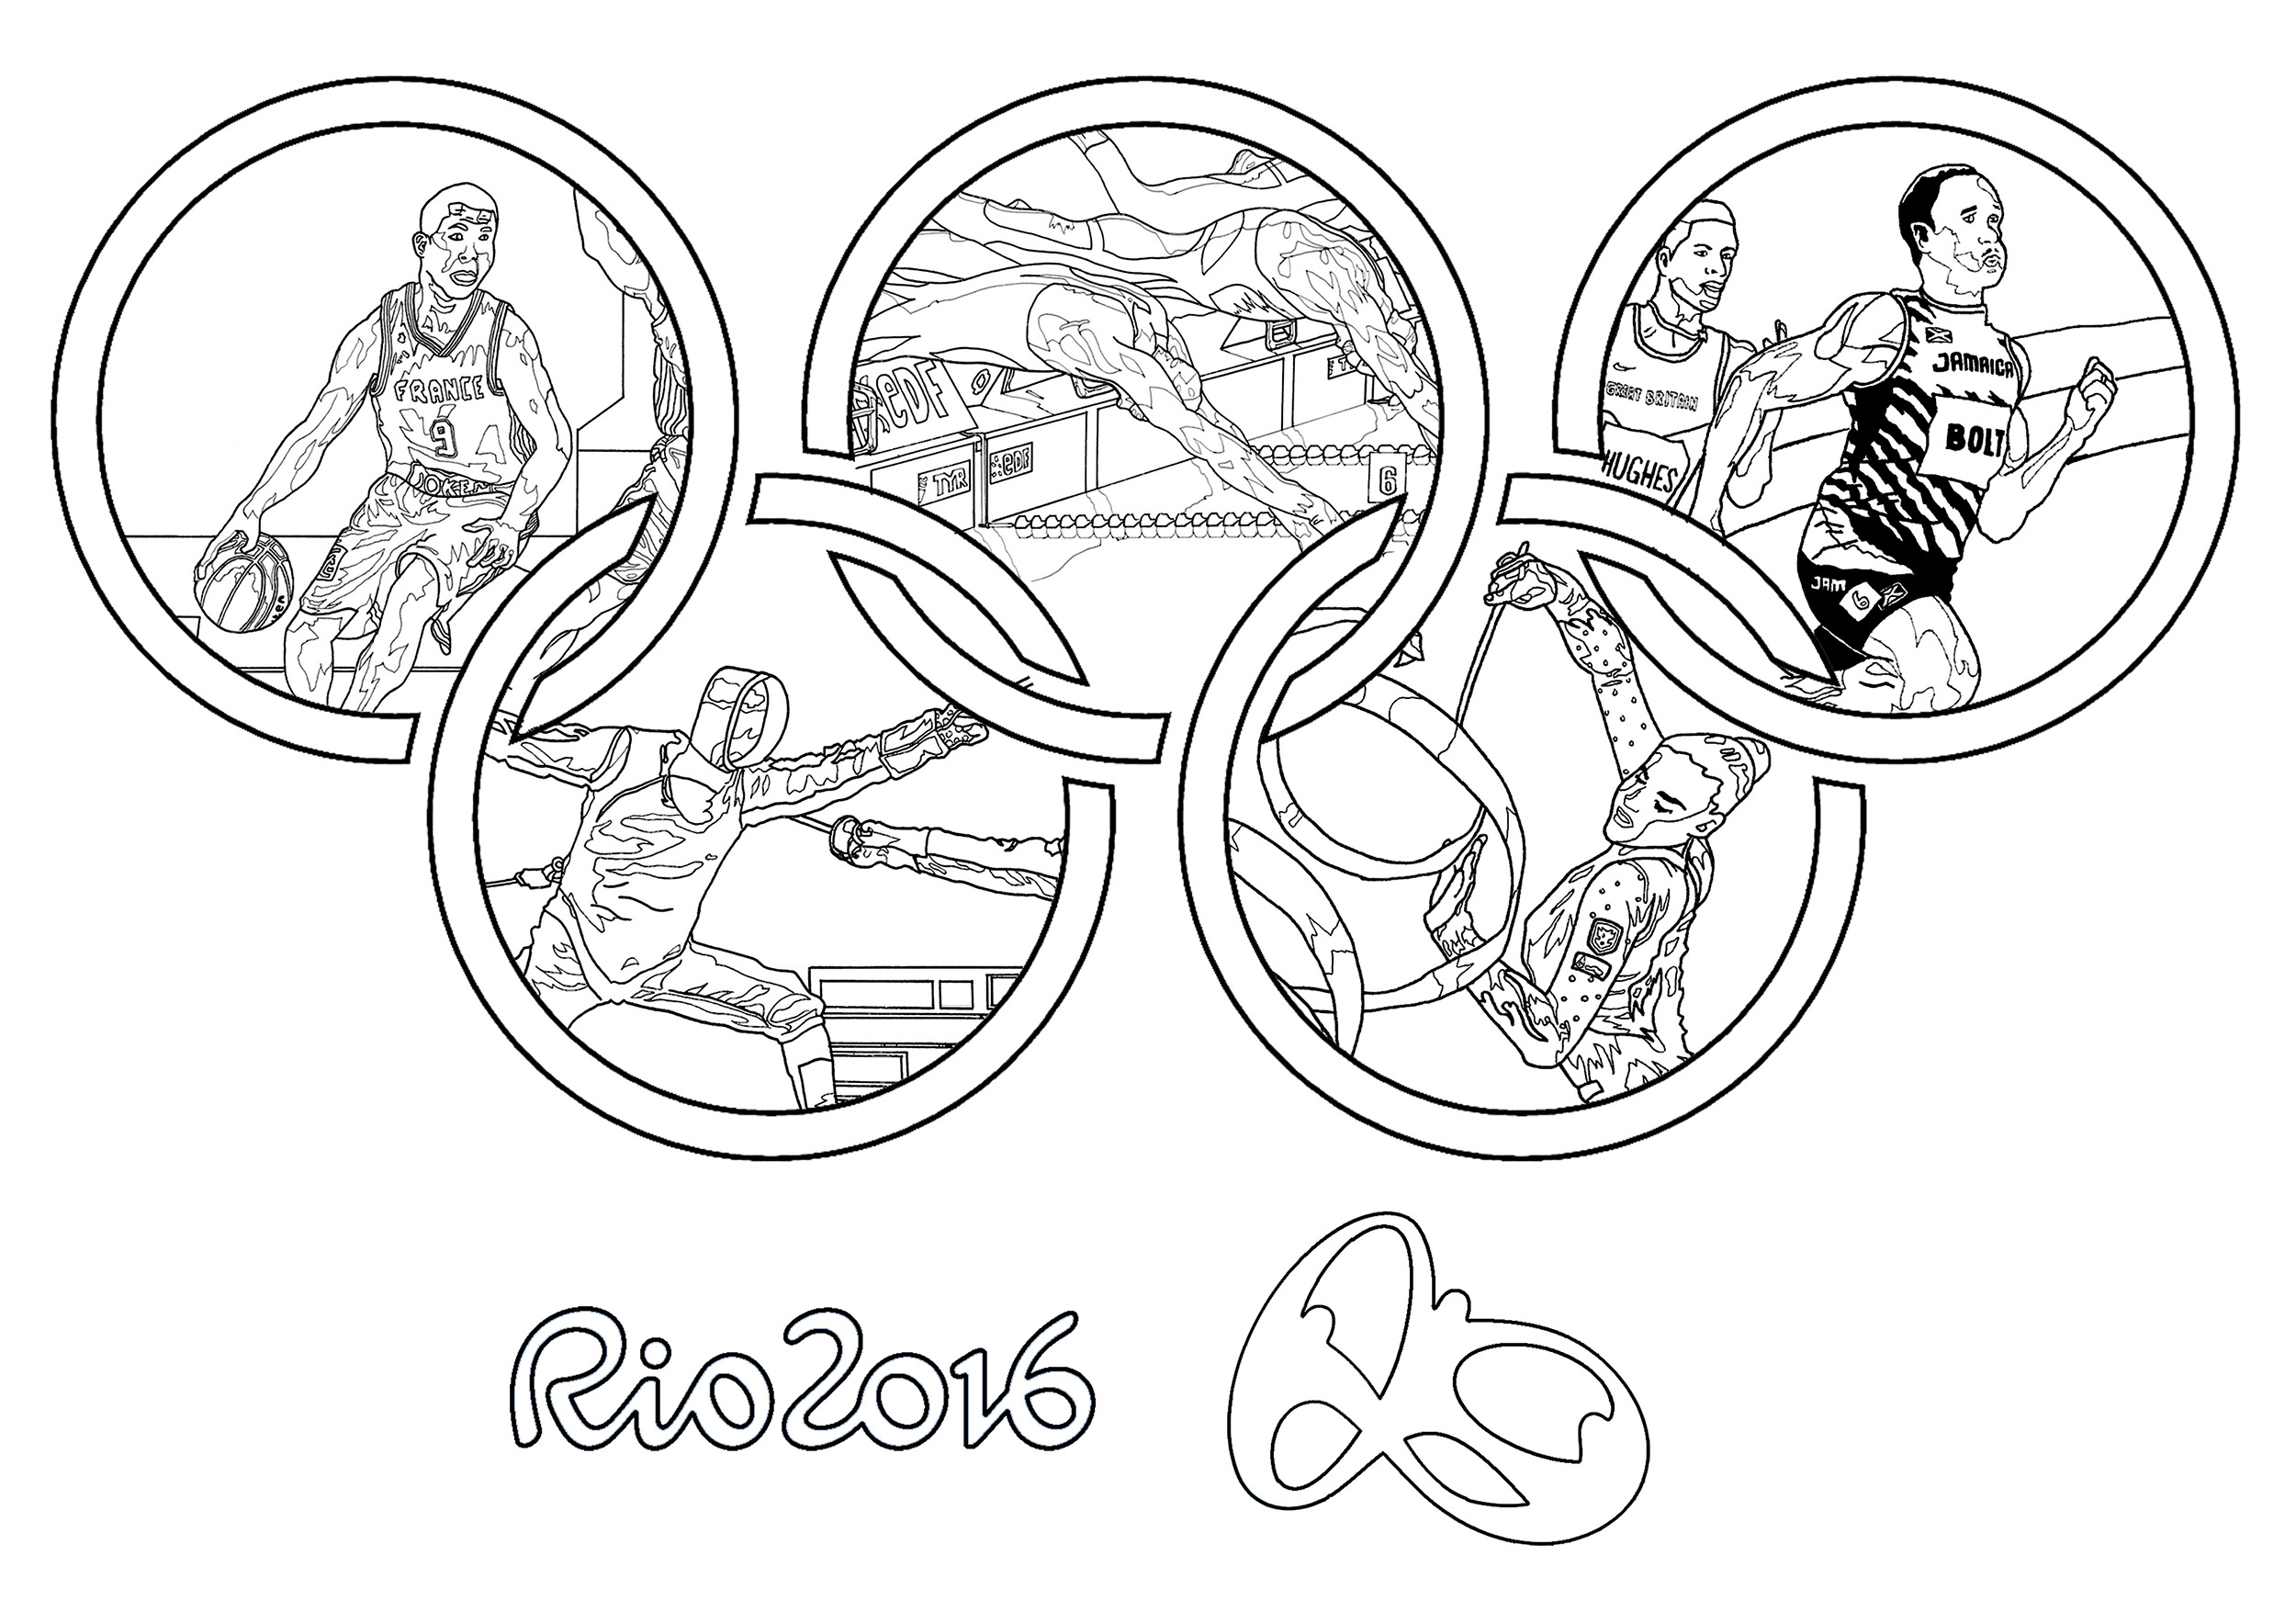 Colouring for kids games - Coloring Page For The 2016 Rio Olympic Games Olympic Rings From The Gallery